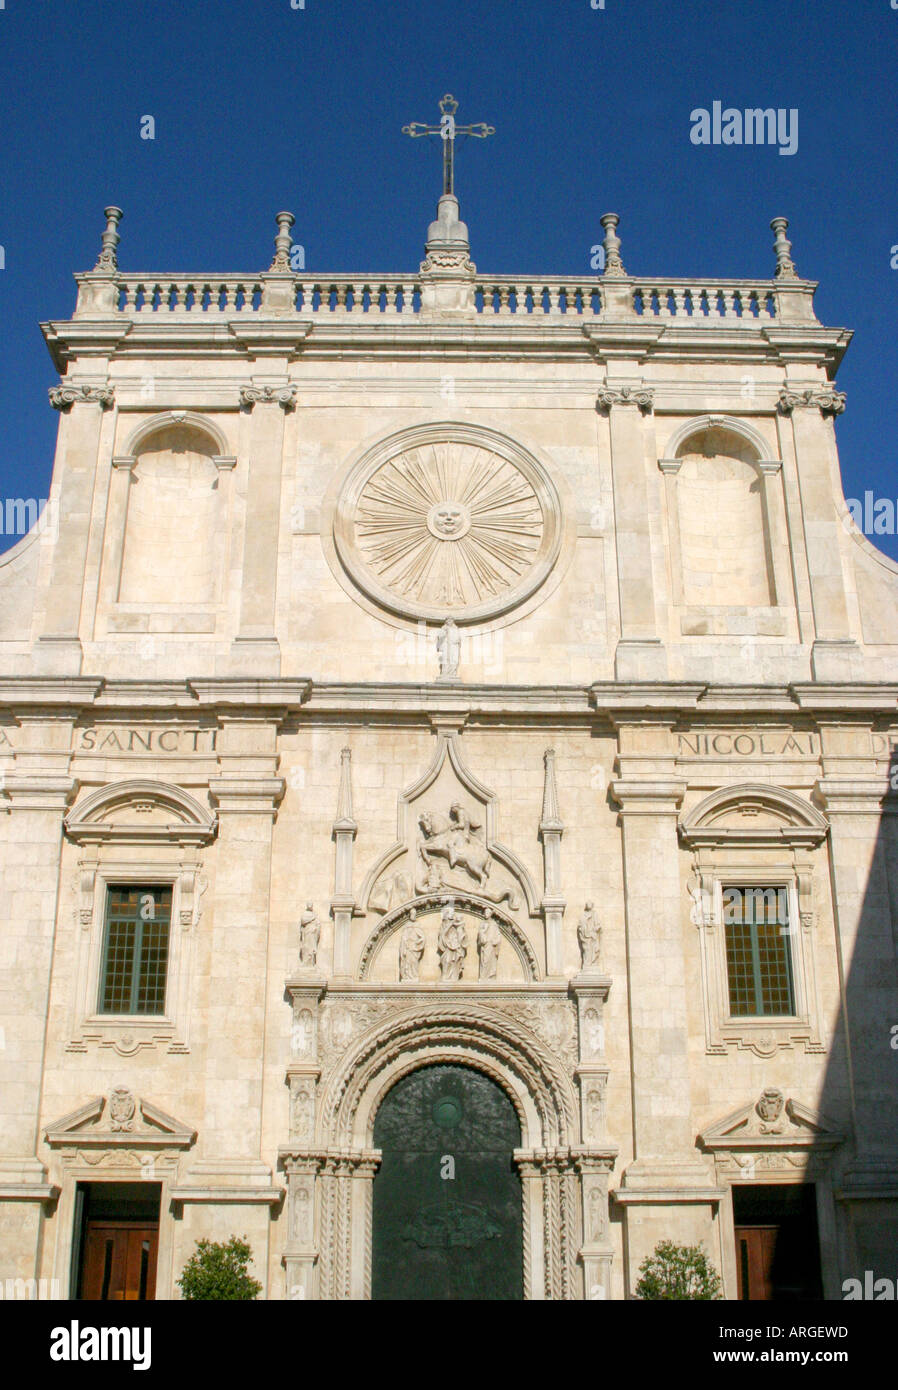 Facade of the Church of San Nicolo of Tolentino in the Marches, le Marche , Italy - Stock Image